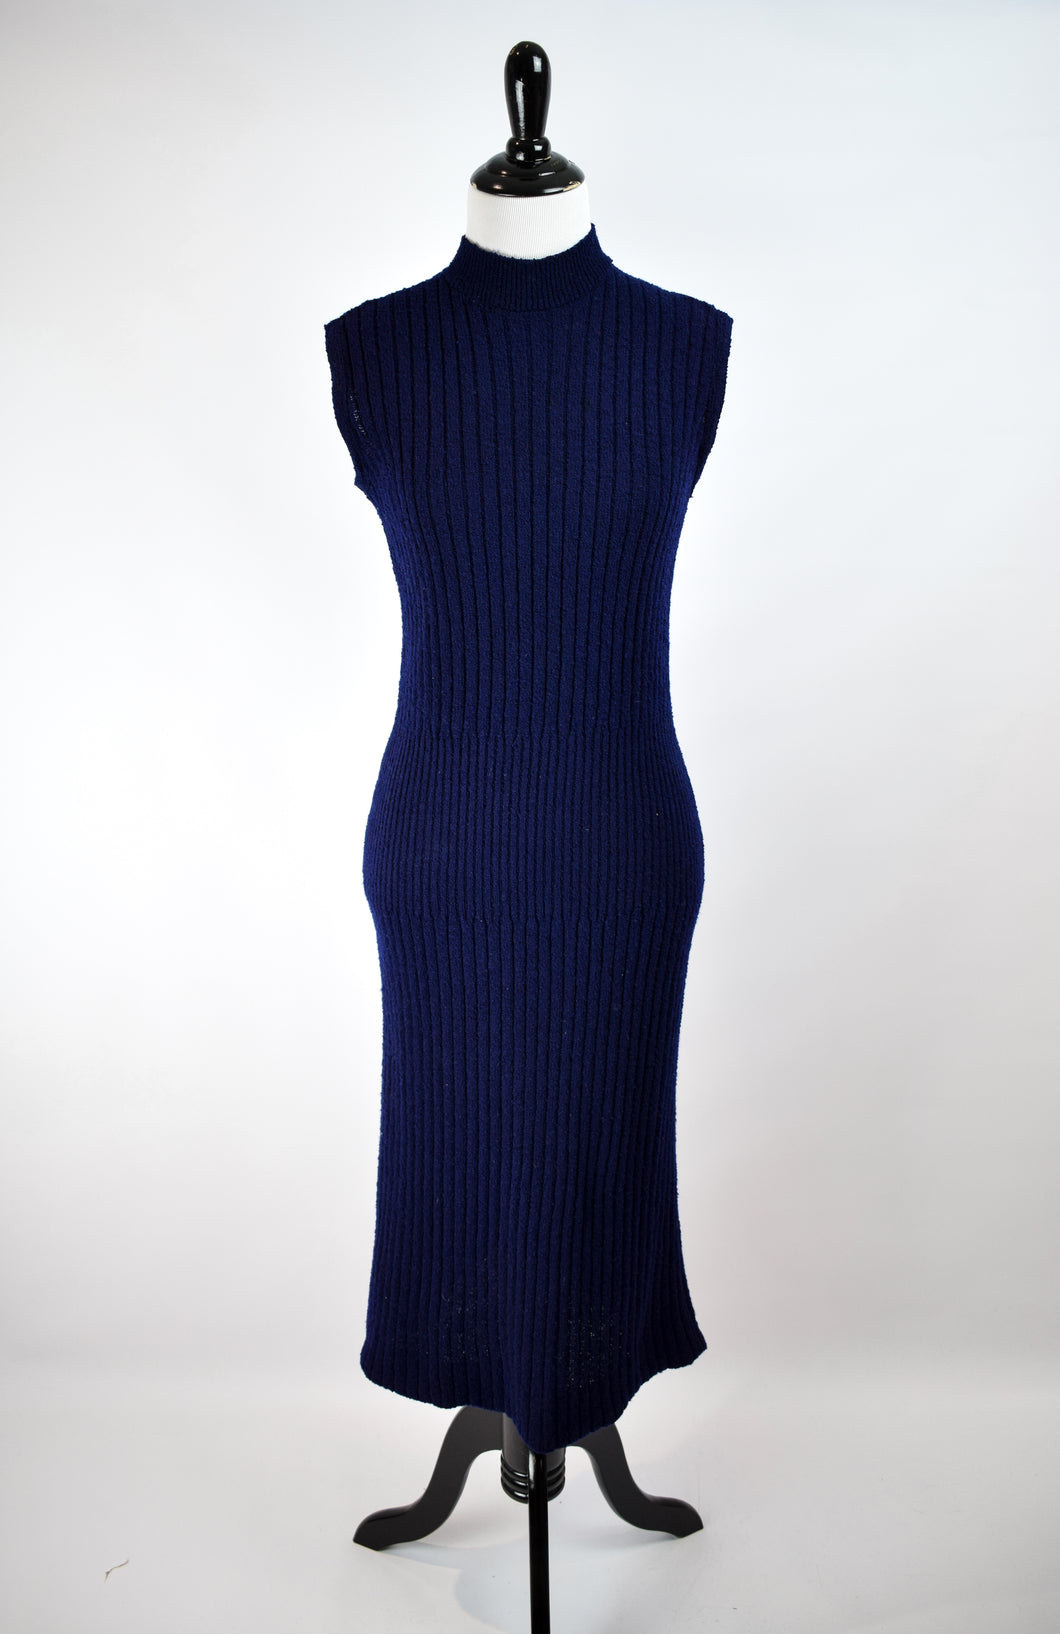 1940s Ribbed Nubby Knit Pencil Dress